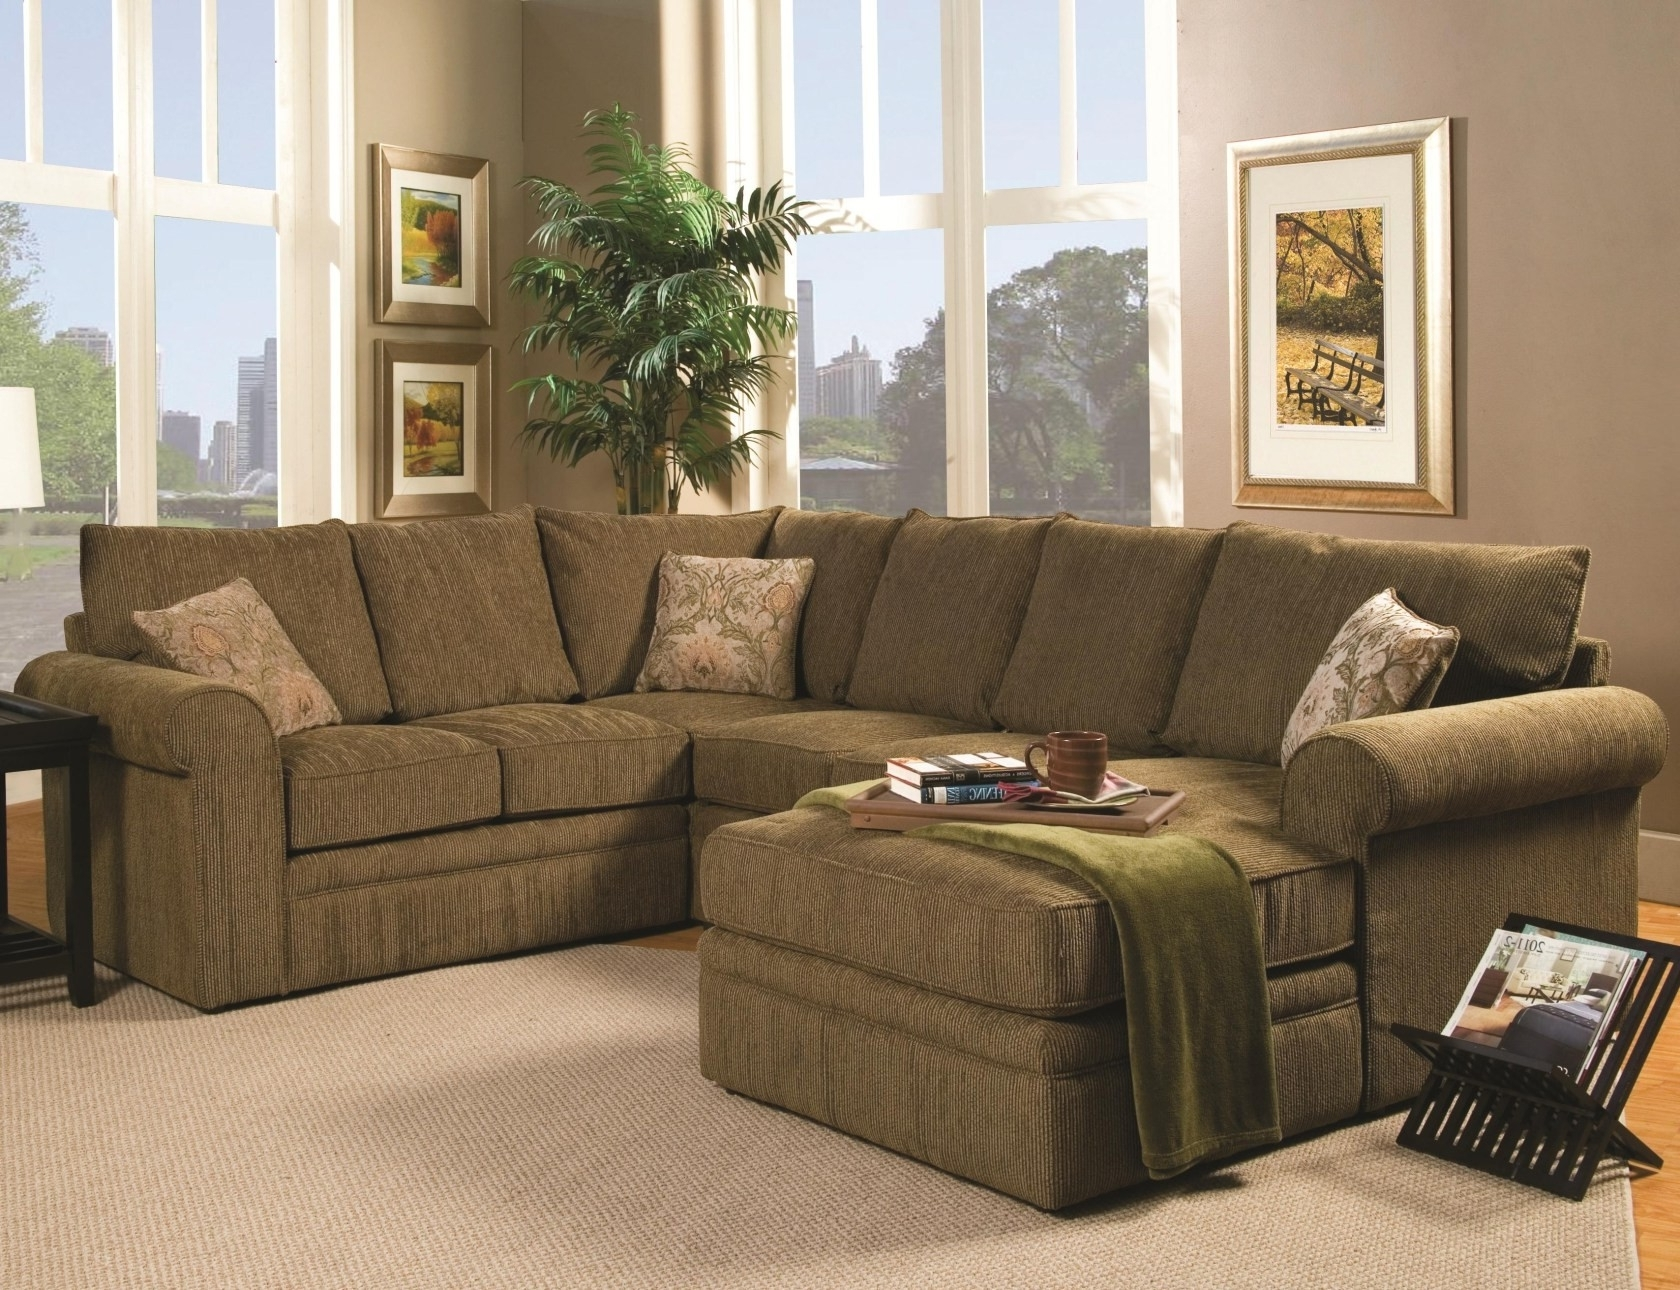 Fashionable U Shaped Leather Sectional Sofas In Perfect U Shaped Sectional Sofa 77 With Additional Living Room (View 15 of 20)